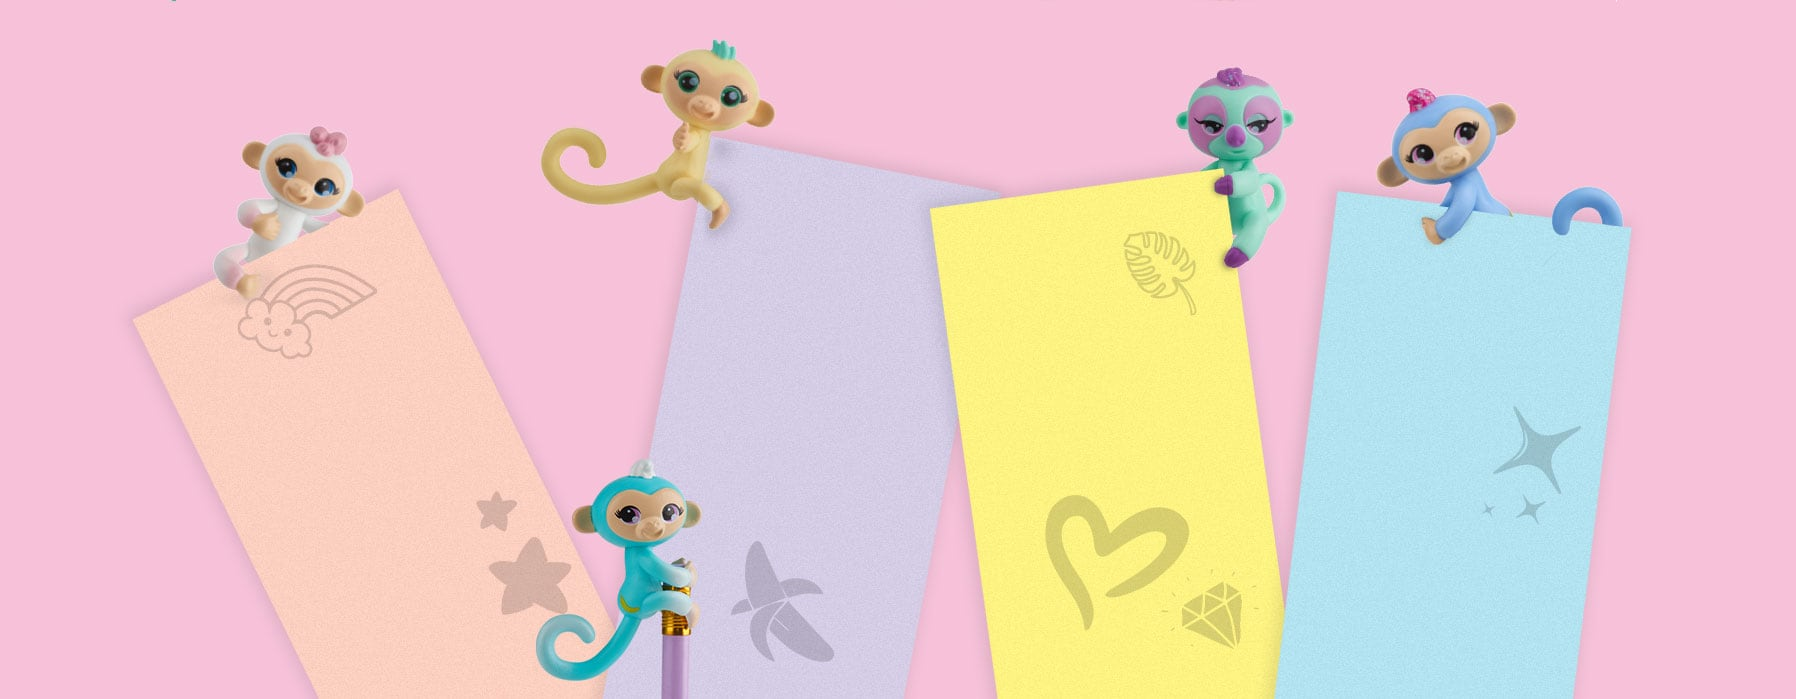 Fingerlings Minis playfully climbing over construction paper cut outs